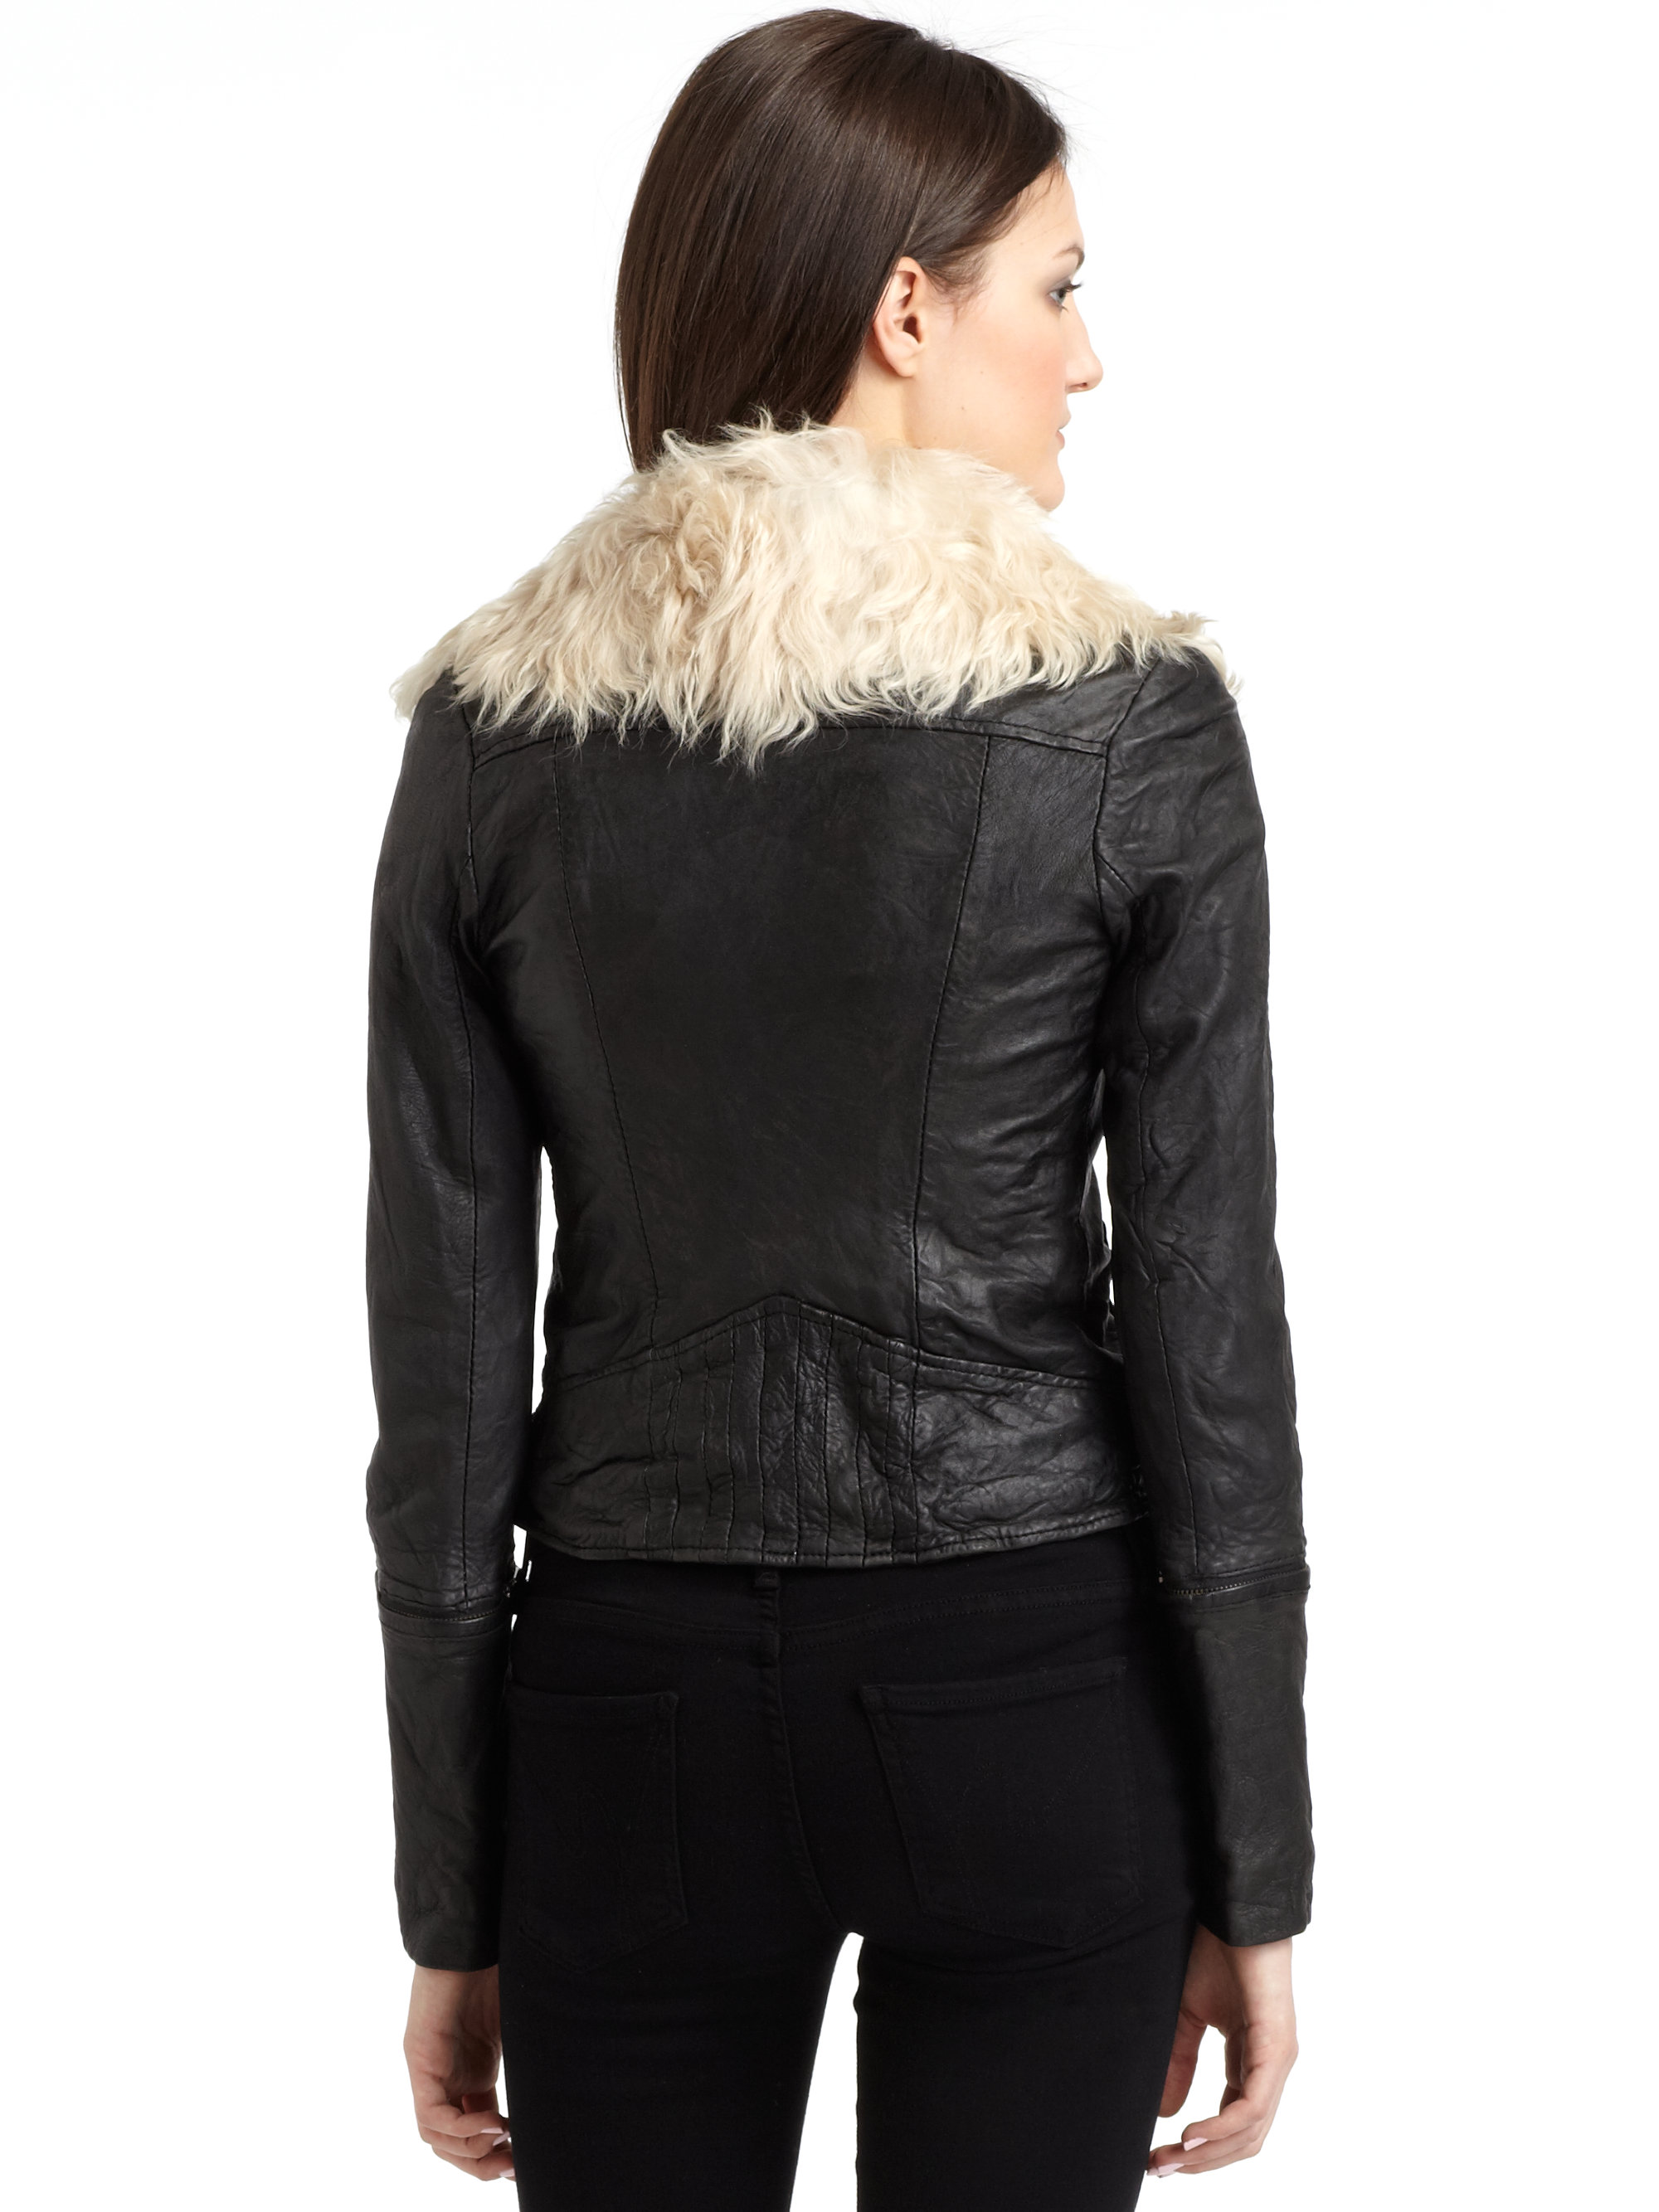 Doma Leather Leather Jacket With Goat Fur Collar In Black